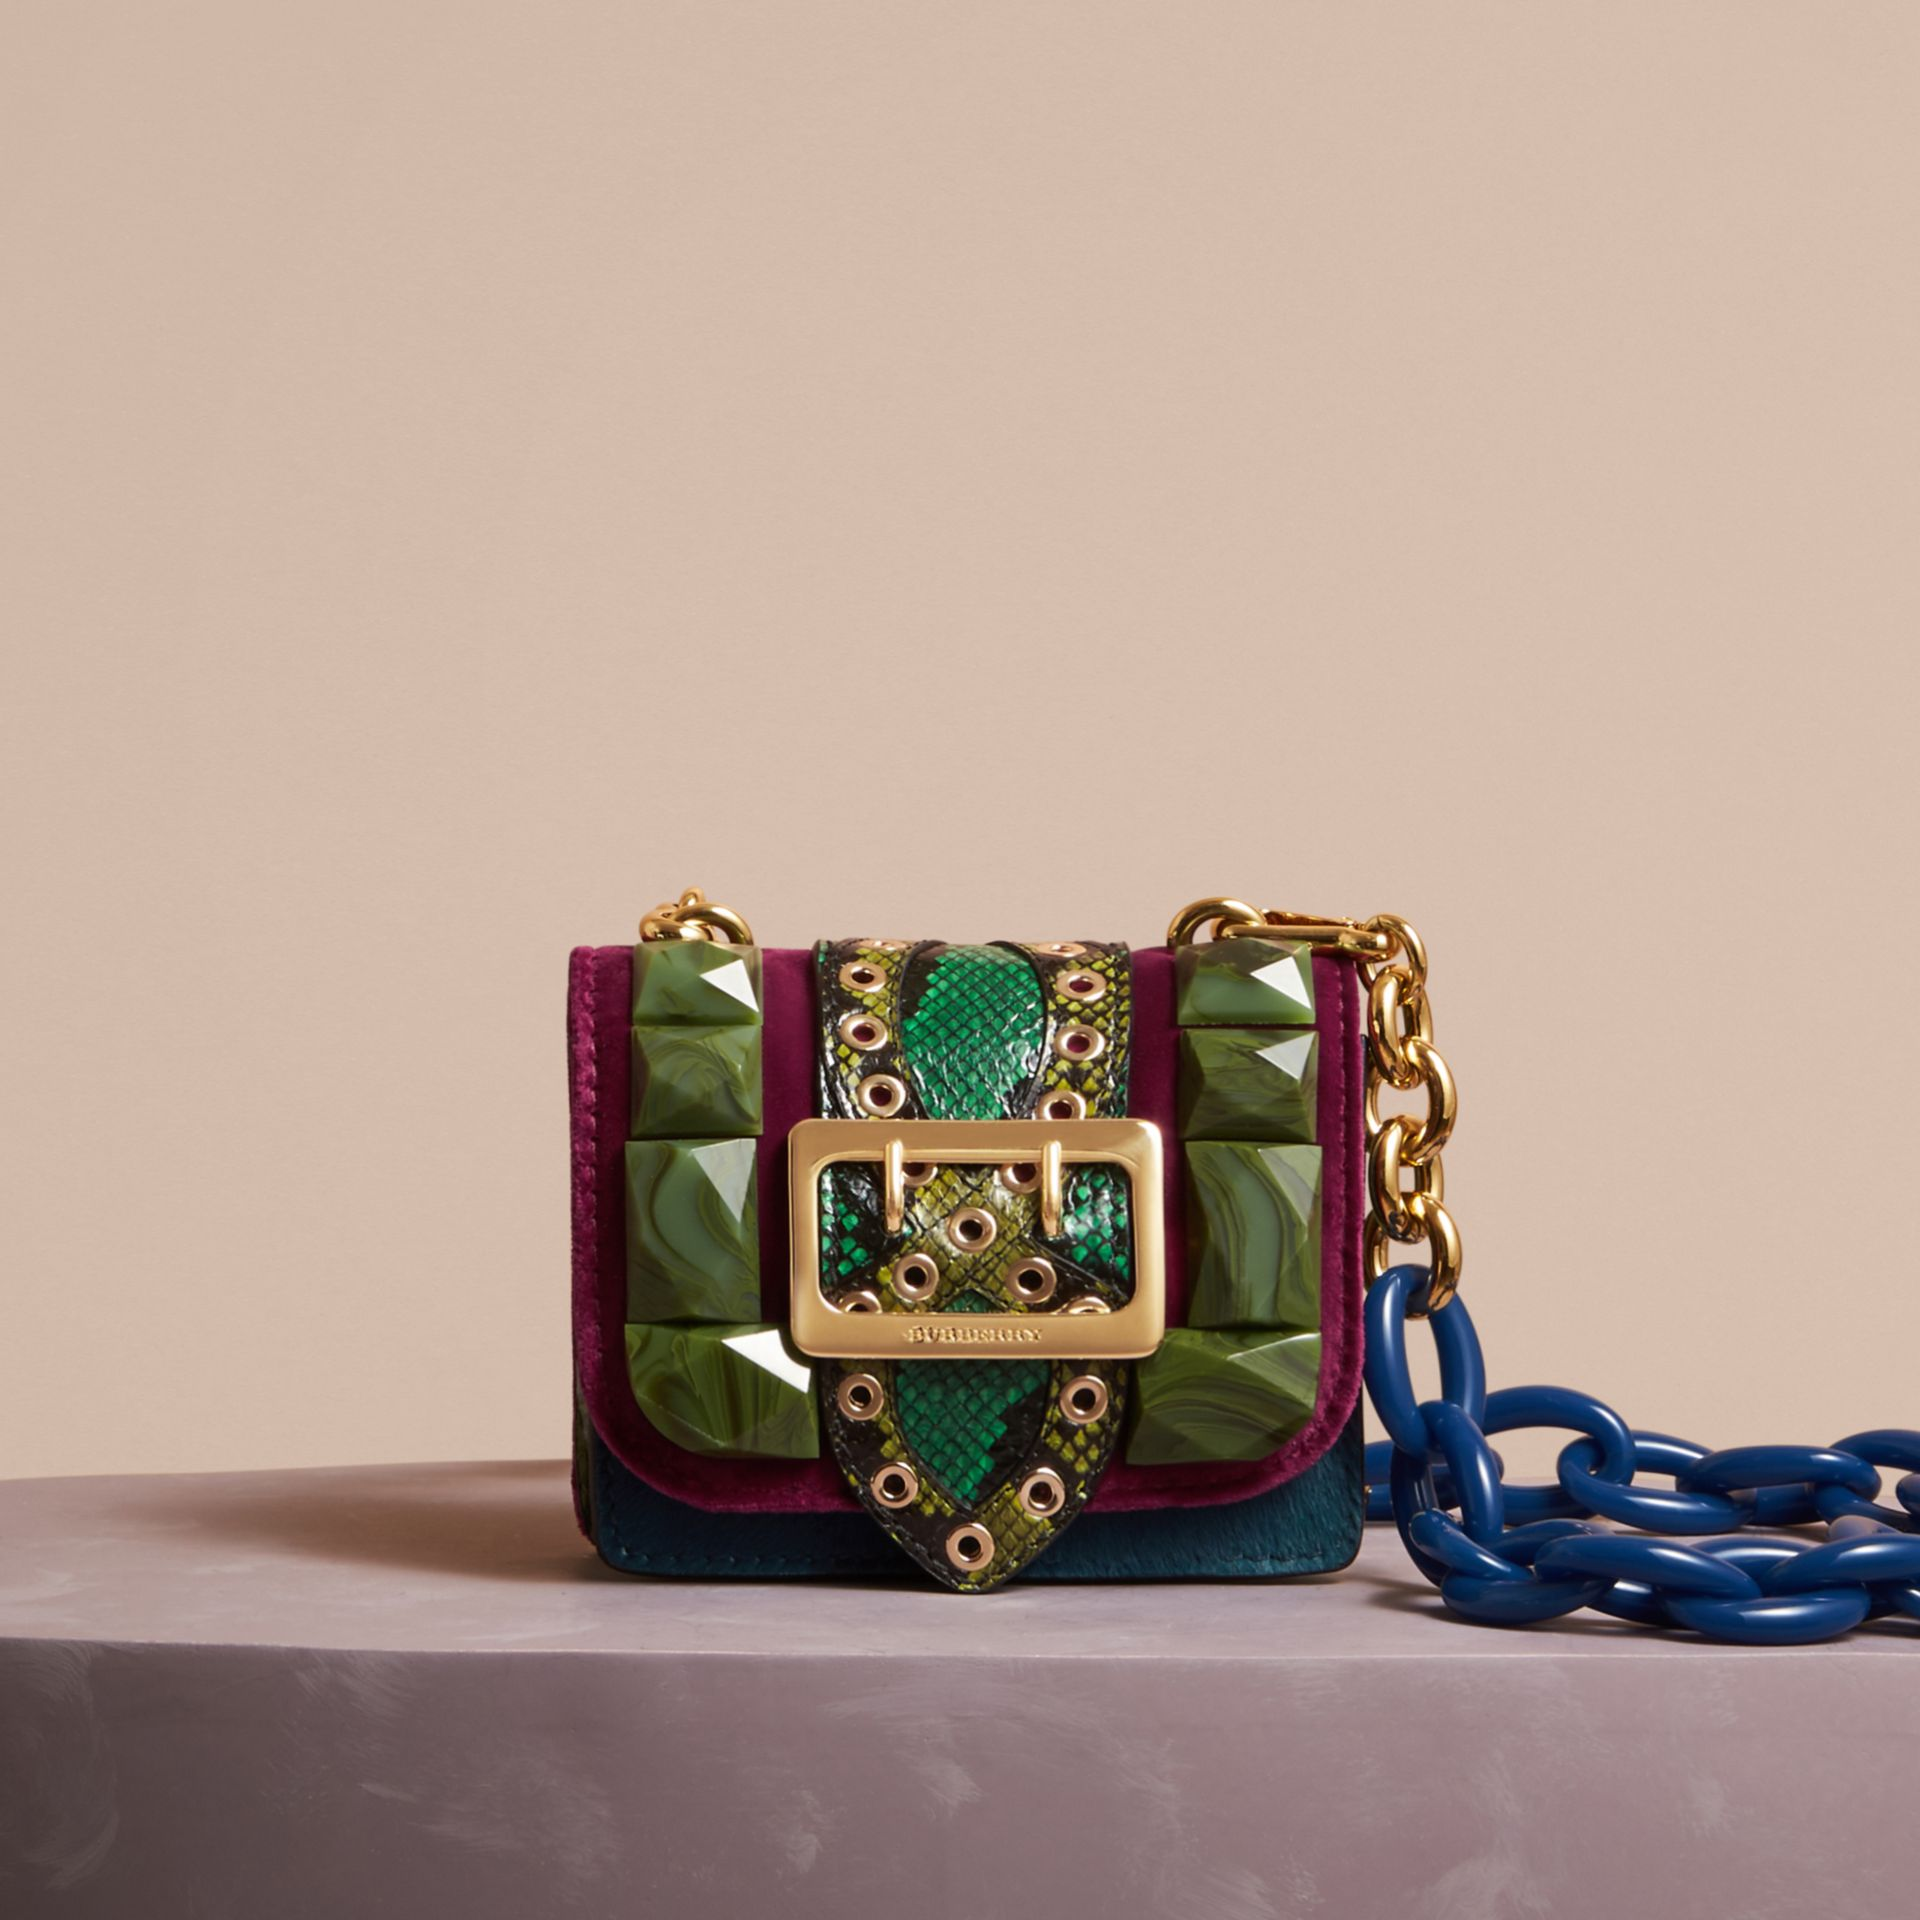 The Mini Square Buckle Bag in Calfskin, Snakeskin and Velvet in Damson - Women | Burberry United Kingdom - gallery image 6